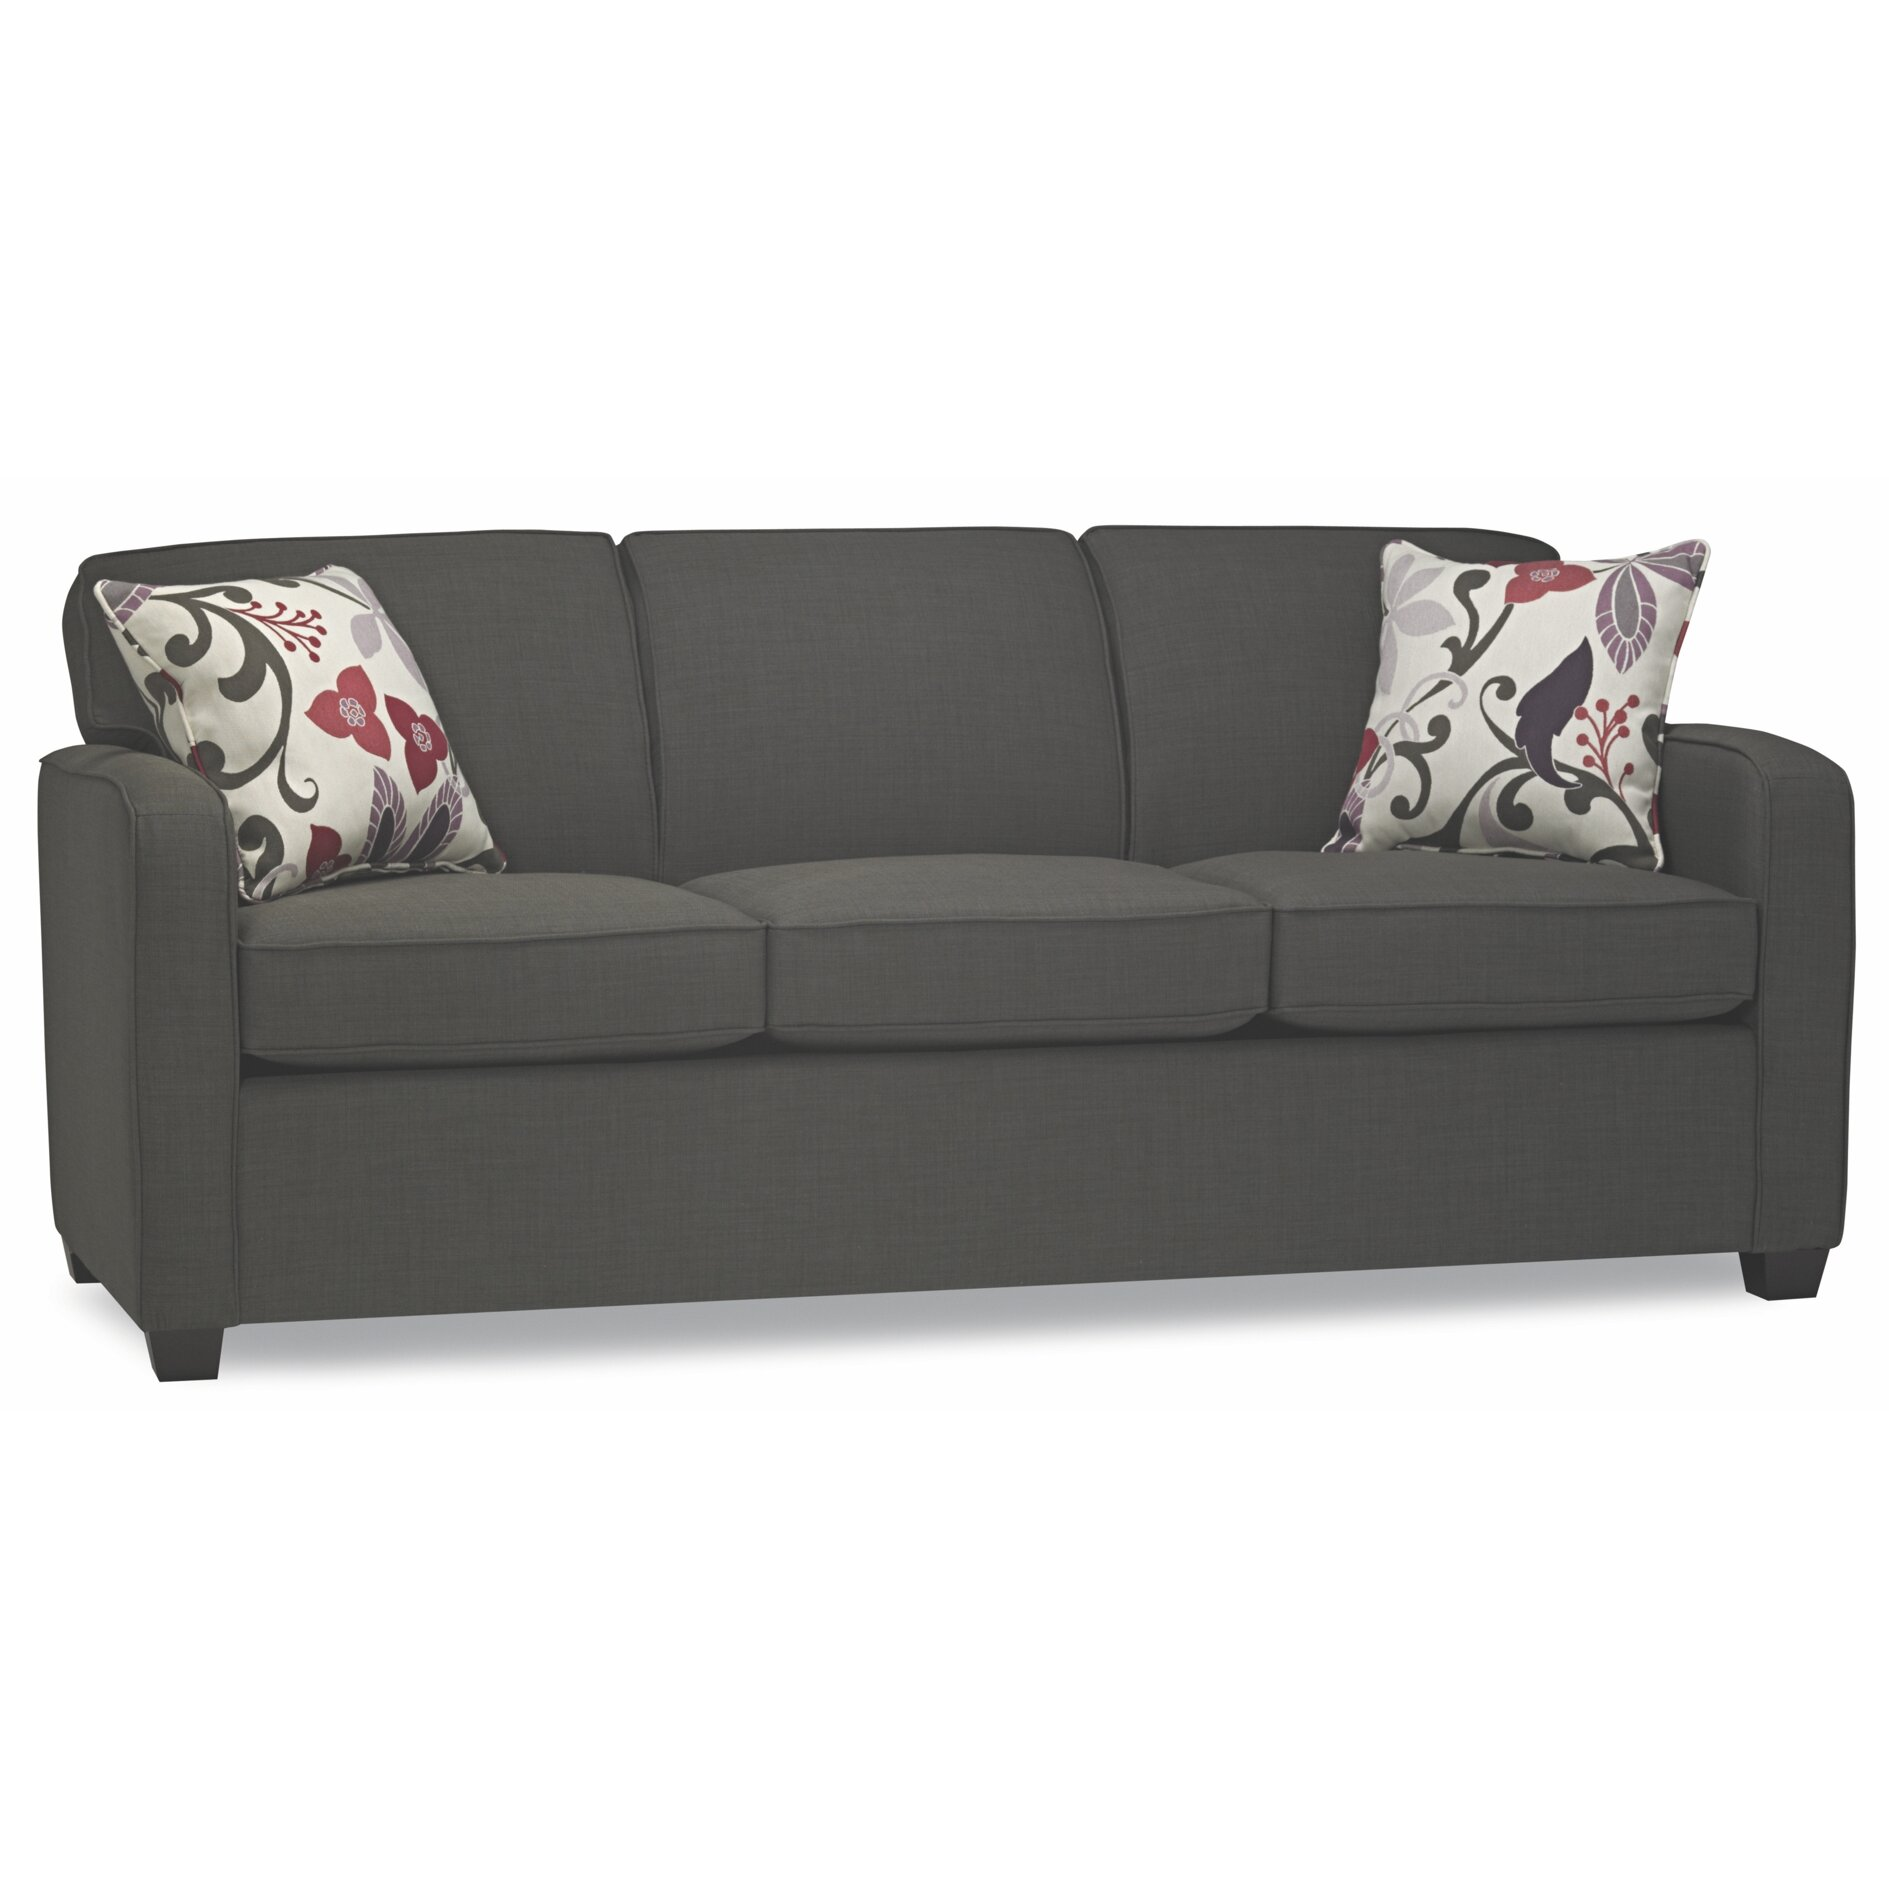 sofas to go cliff double sleeper sofa wayfair. Black Bedroom Furniture Sets. Home Design Ideas